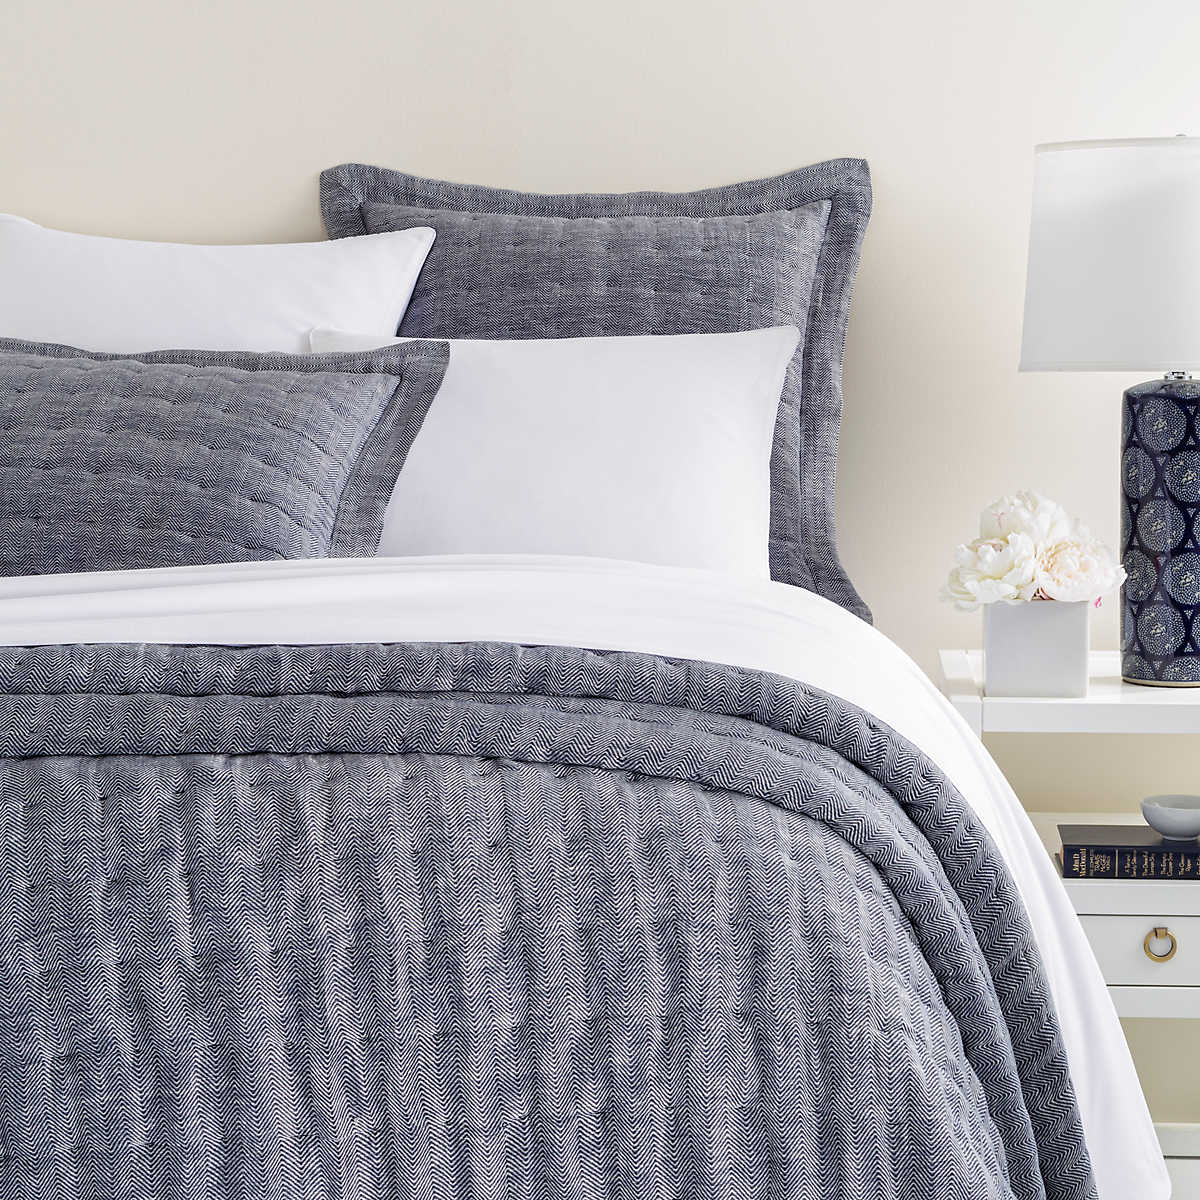 Indigo Bed Linen Part - 48: Annie Selke